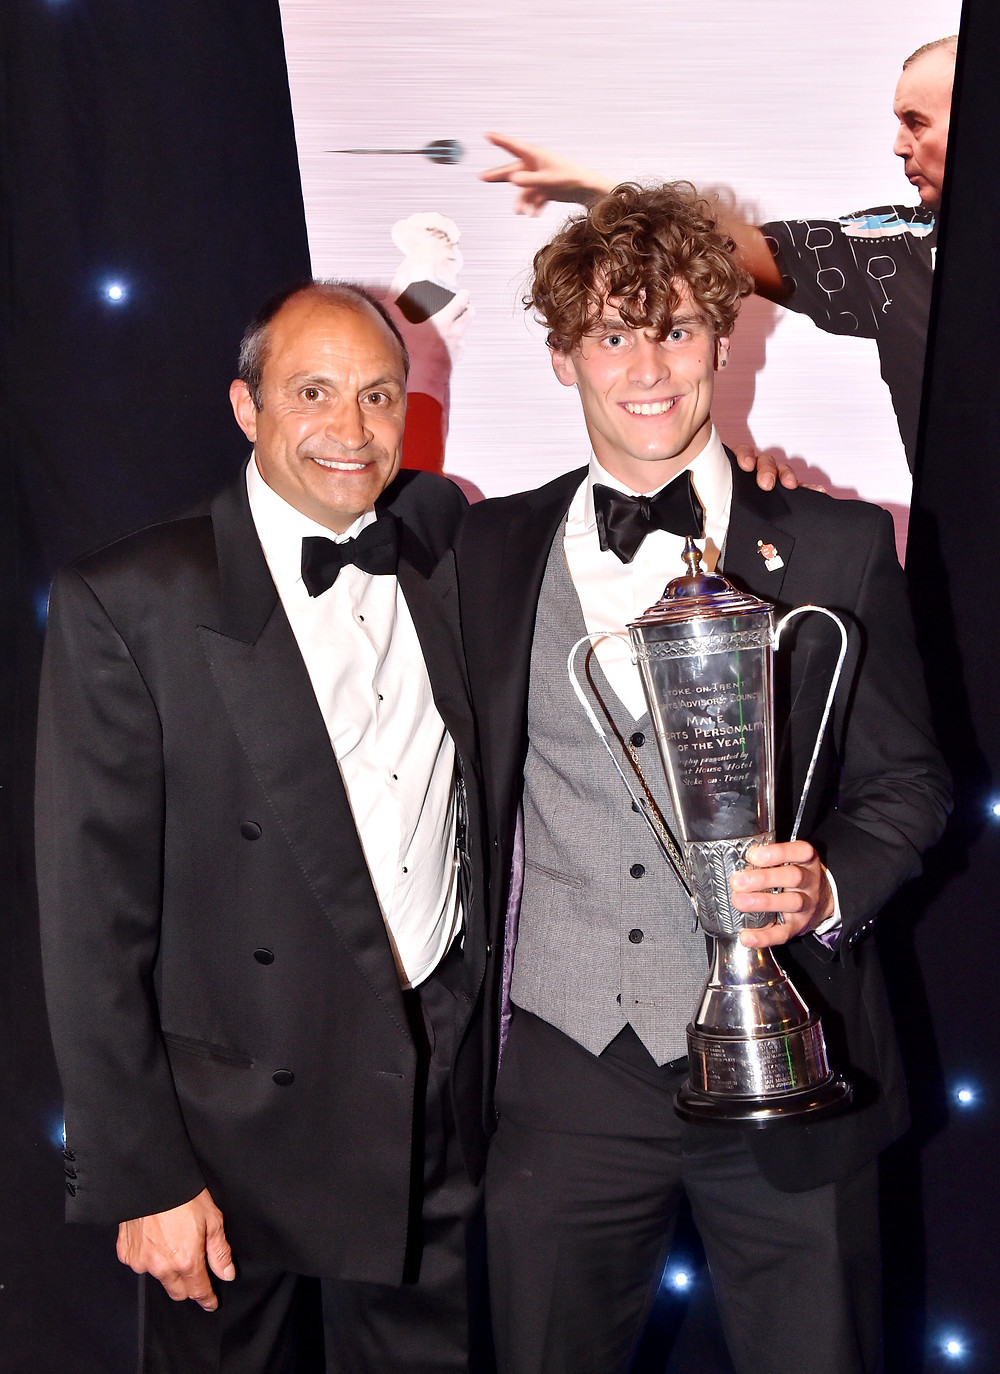 Collecting Stoke-on-Trent Sports Personality of the Year Award at King's Hall, Stoke-on-Trent.